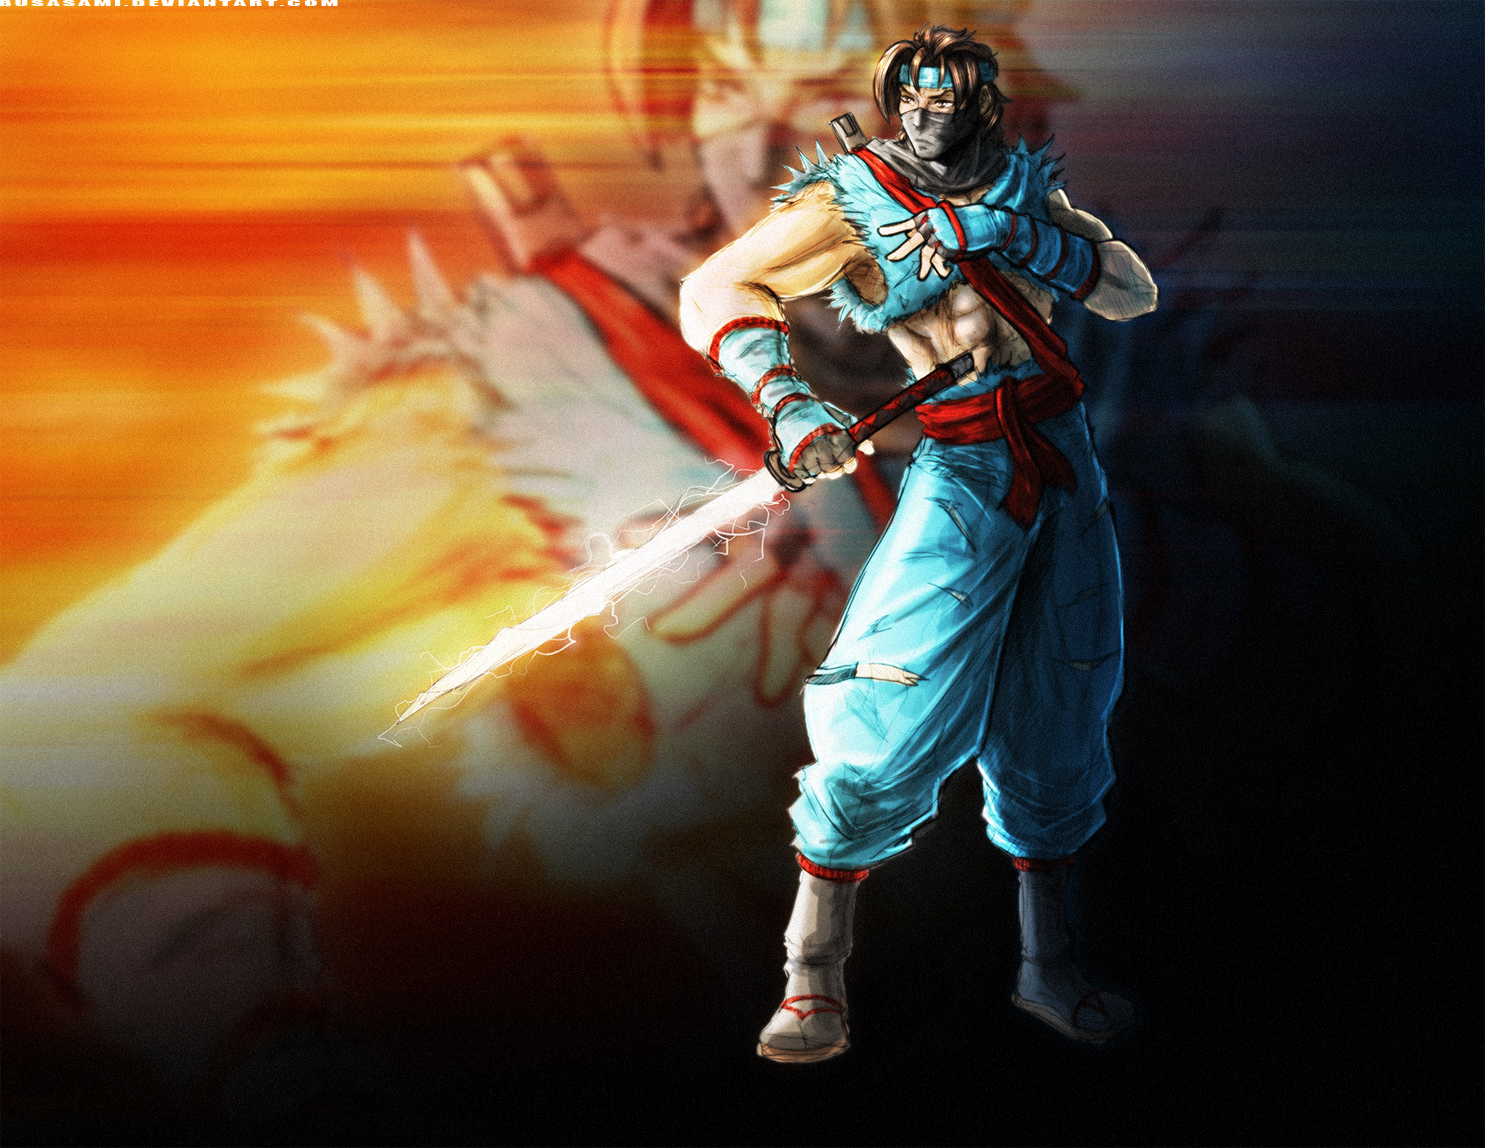 Killer Instinct: Jago by PioPauloSantana